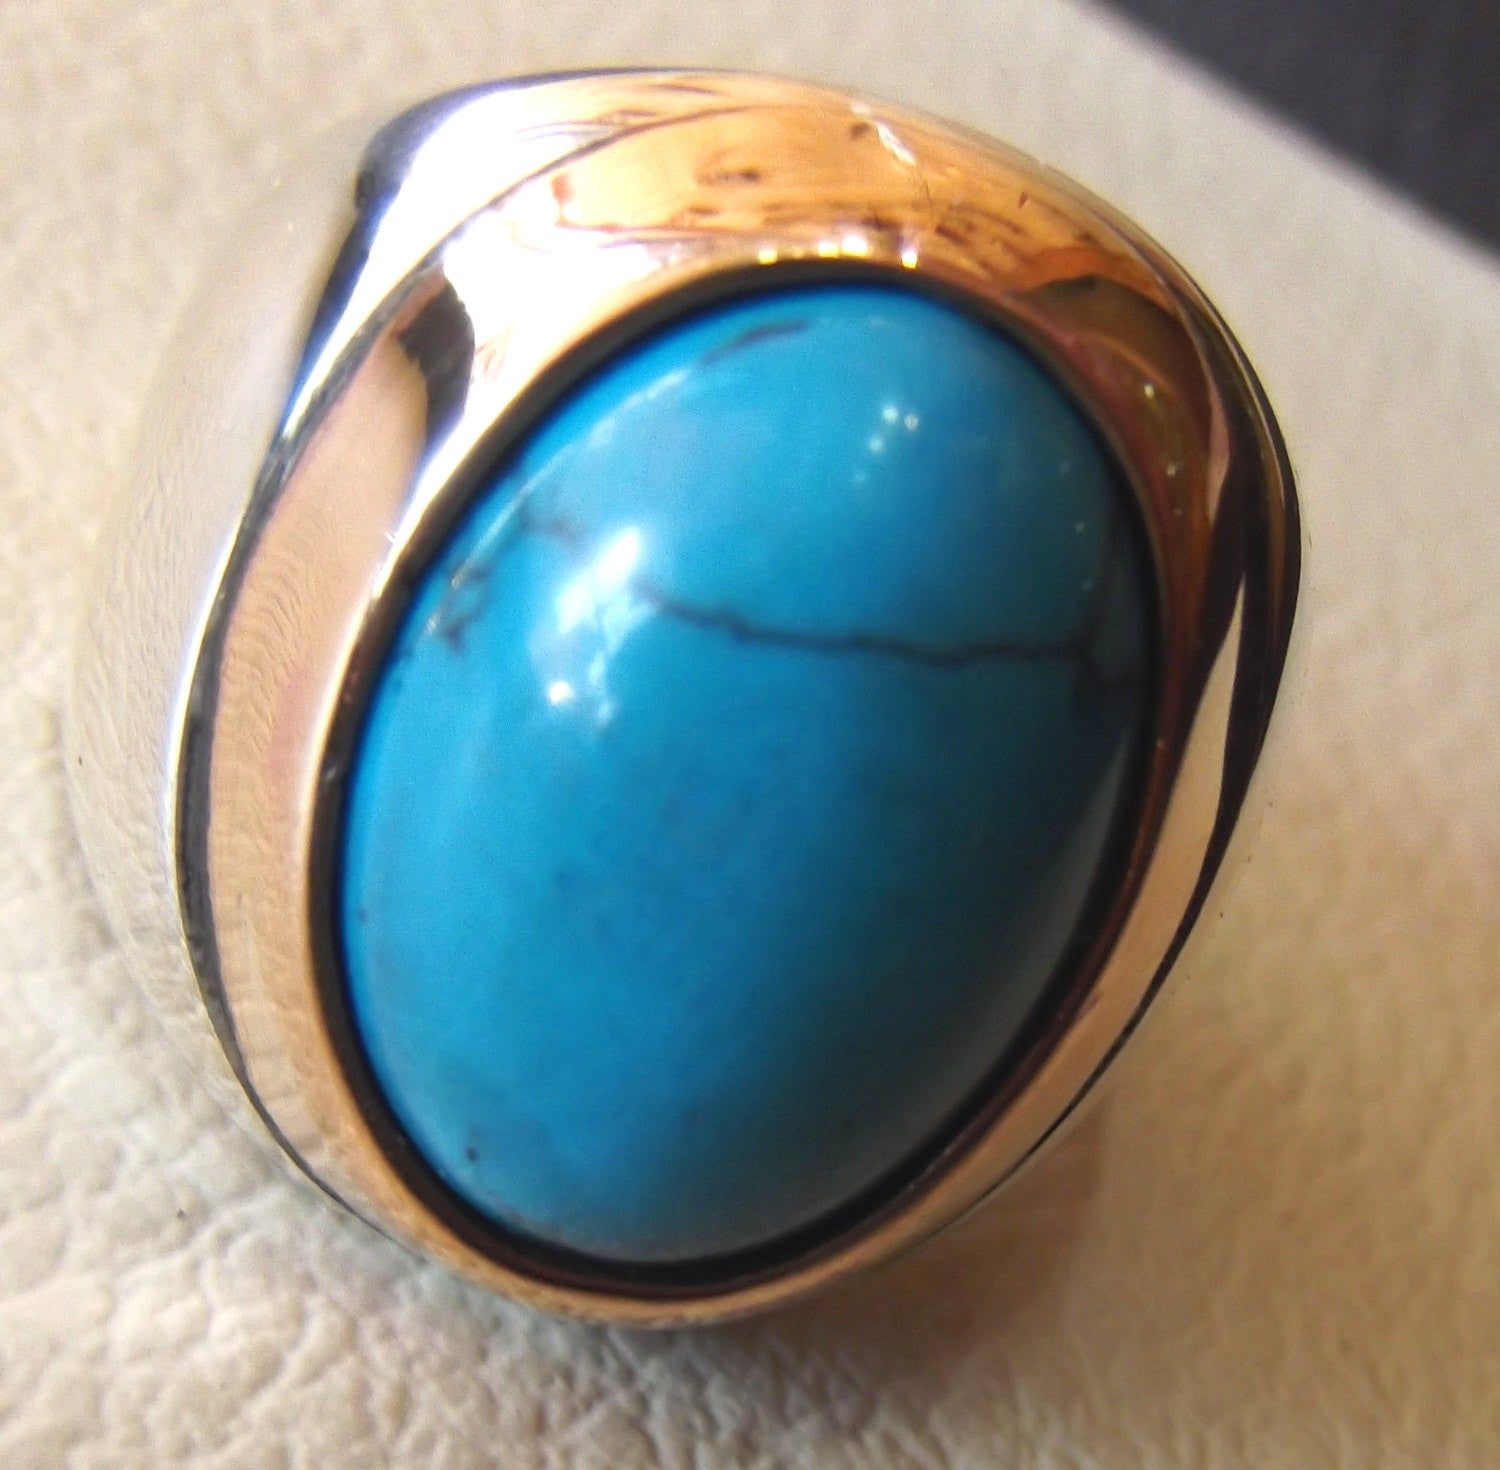 turquoise heavy sterling silver men ring blue oval arab ottoman middle eastern jewelry cabochon stone all sizes bronze frame